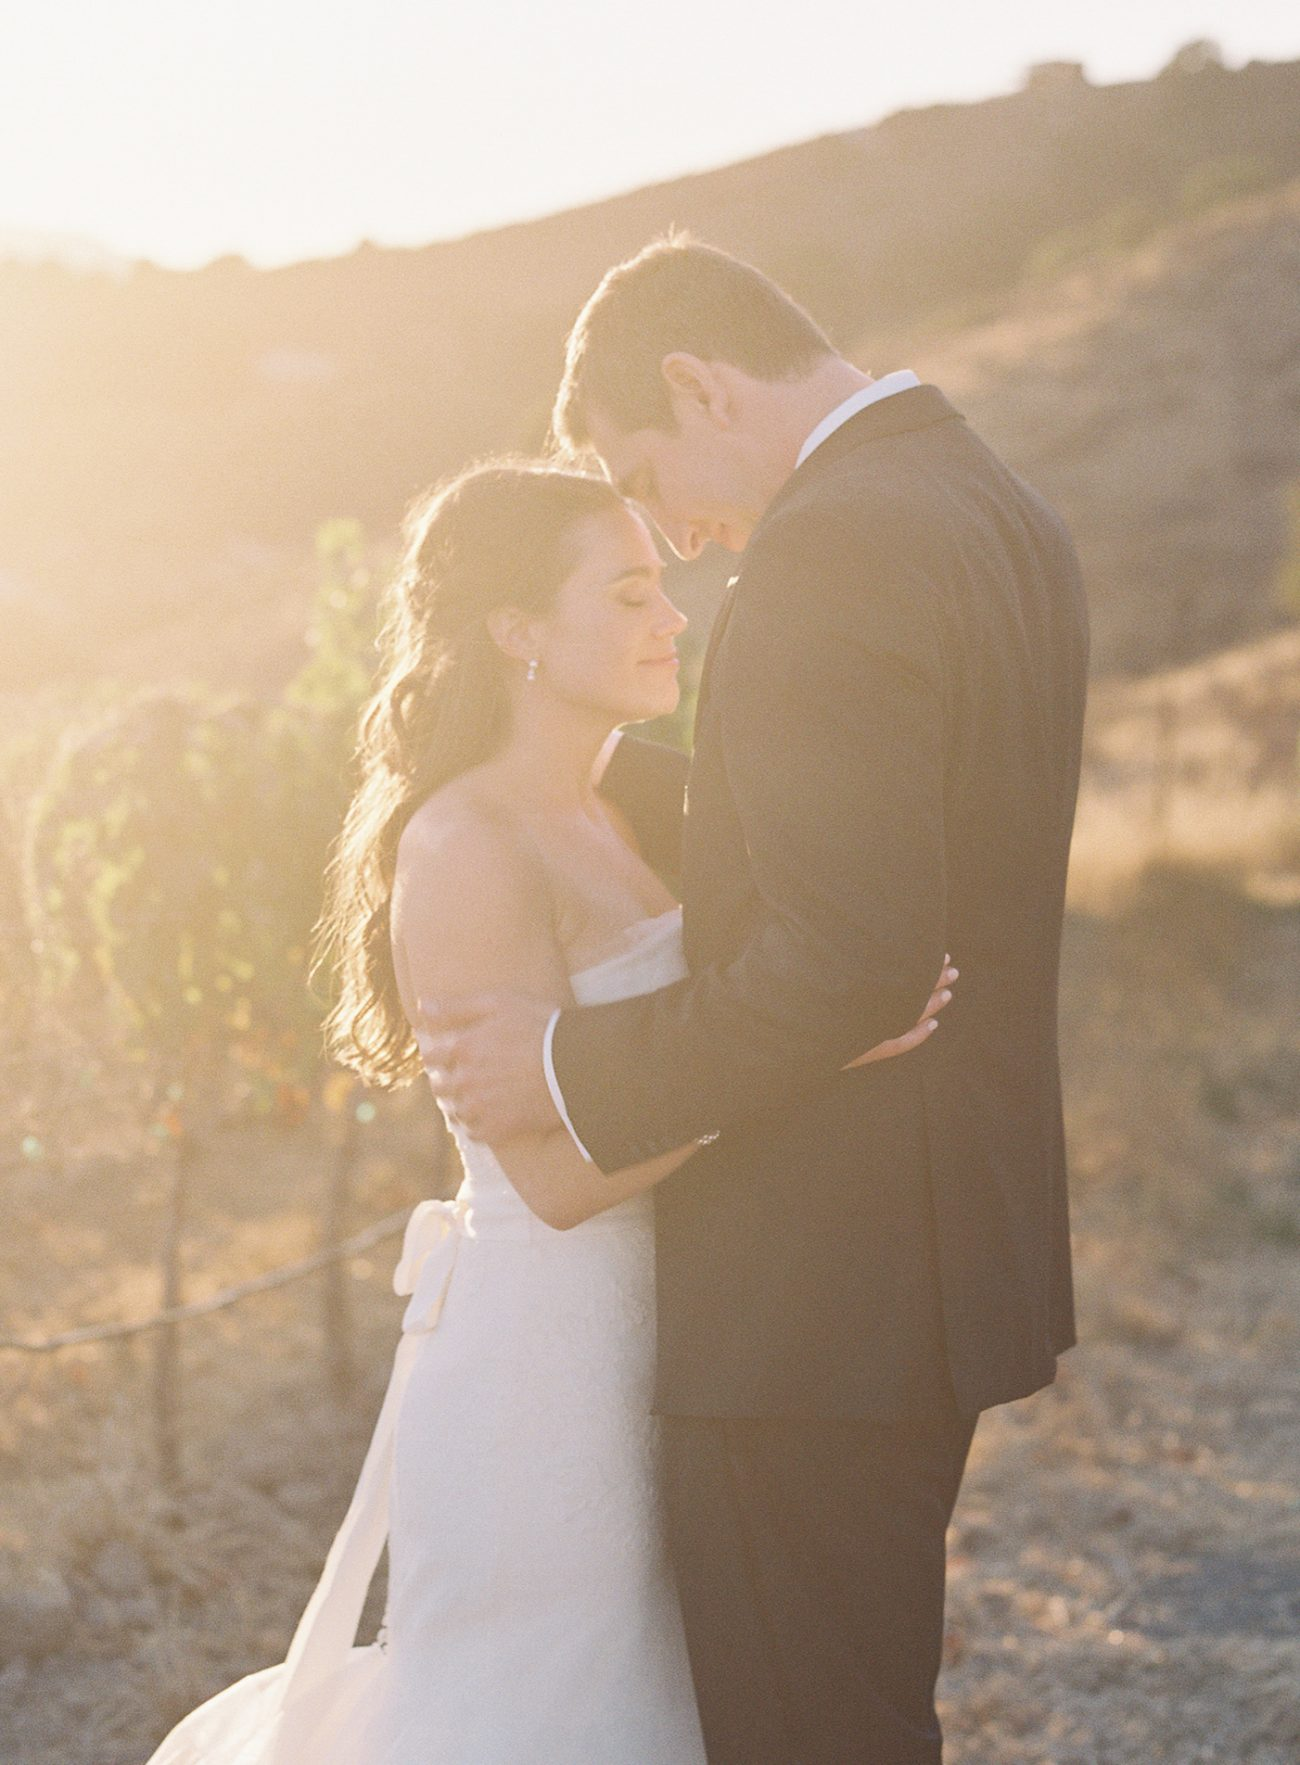 Family and Friends Gather at California Basilica for Outdoor Vineyard Wedding Featuring Rustic and Blush Accents